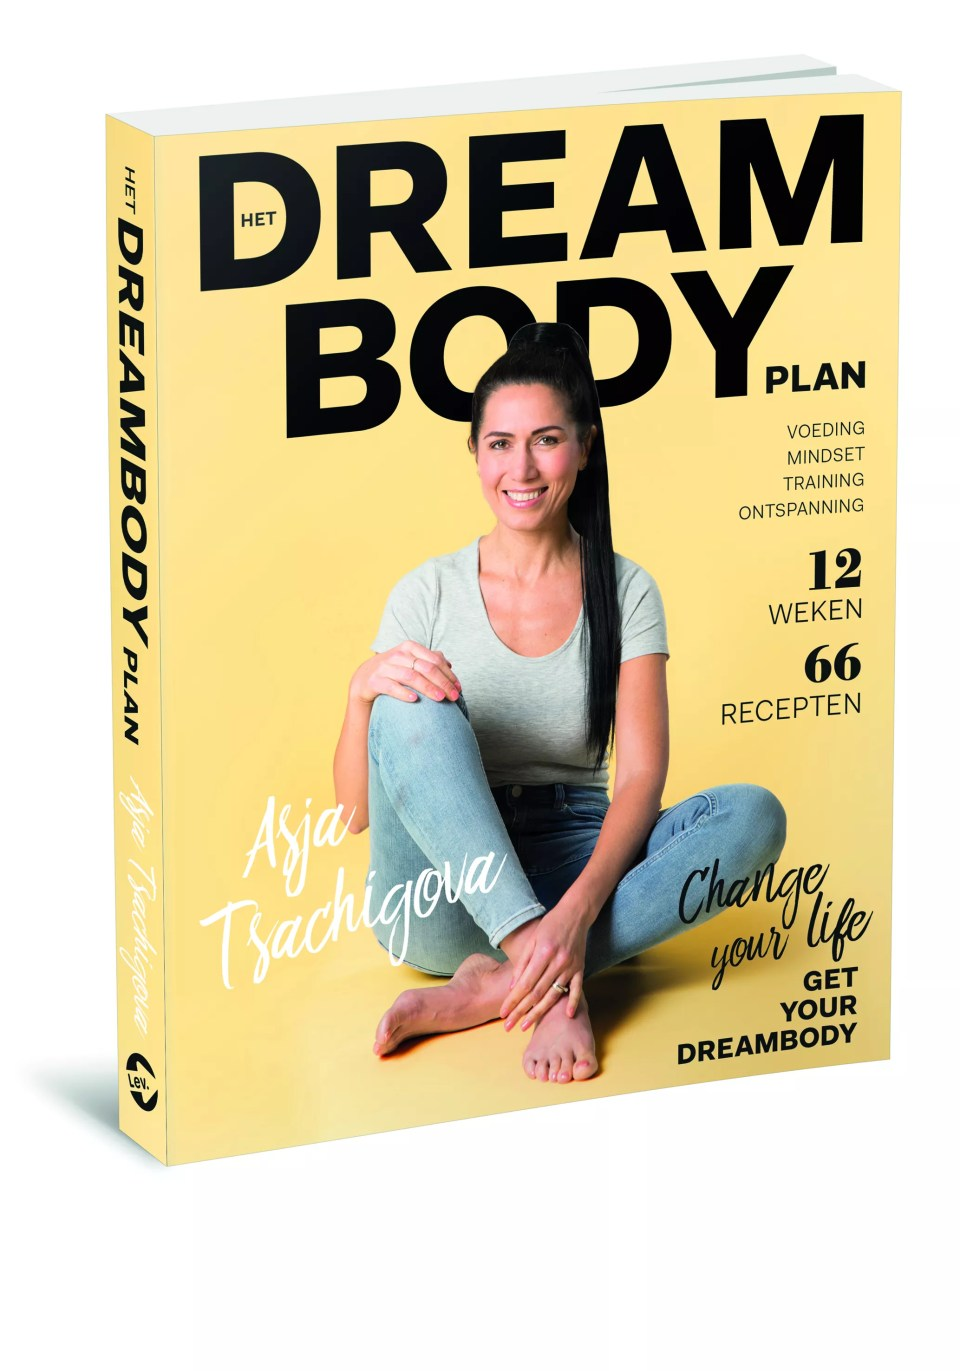 Het Dreambody Plan Asja Tsachigova